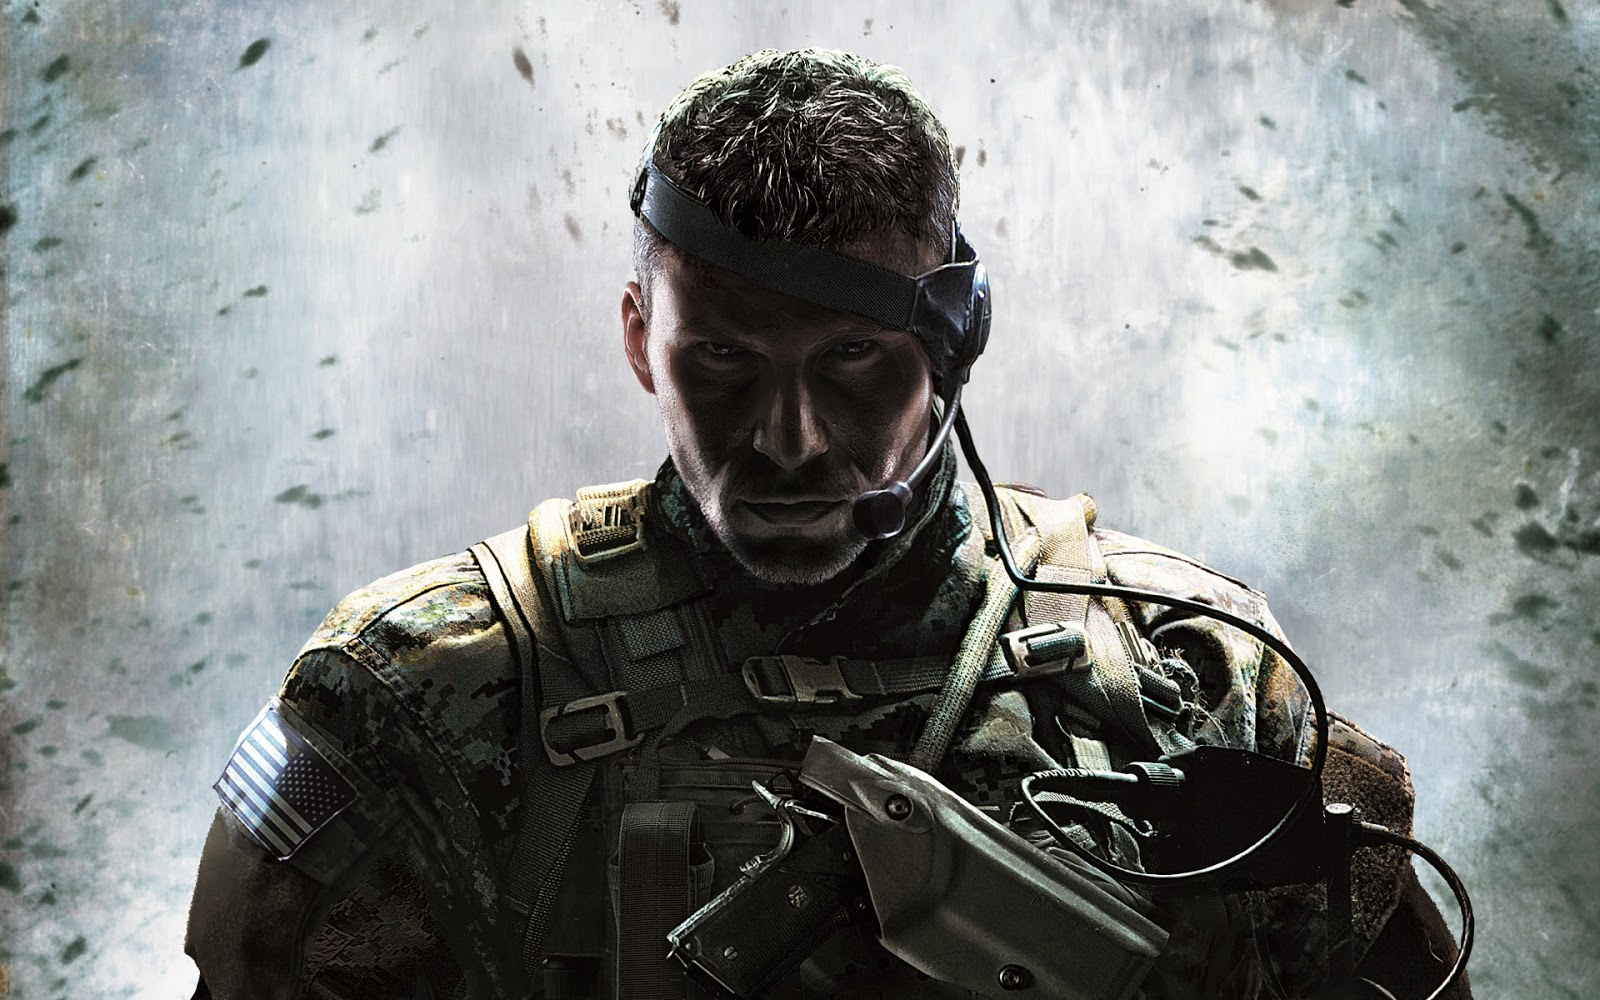 Witty Zone: Sniper : Ghost Warrior 2 Release Date